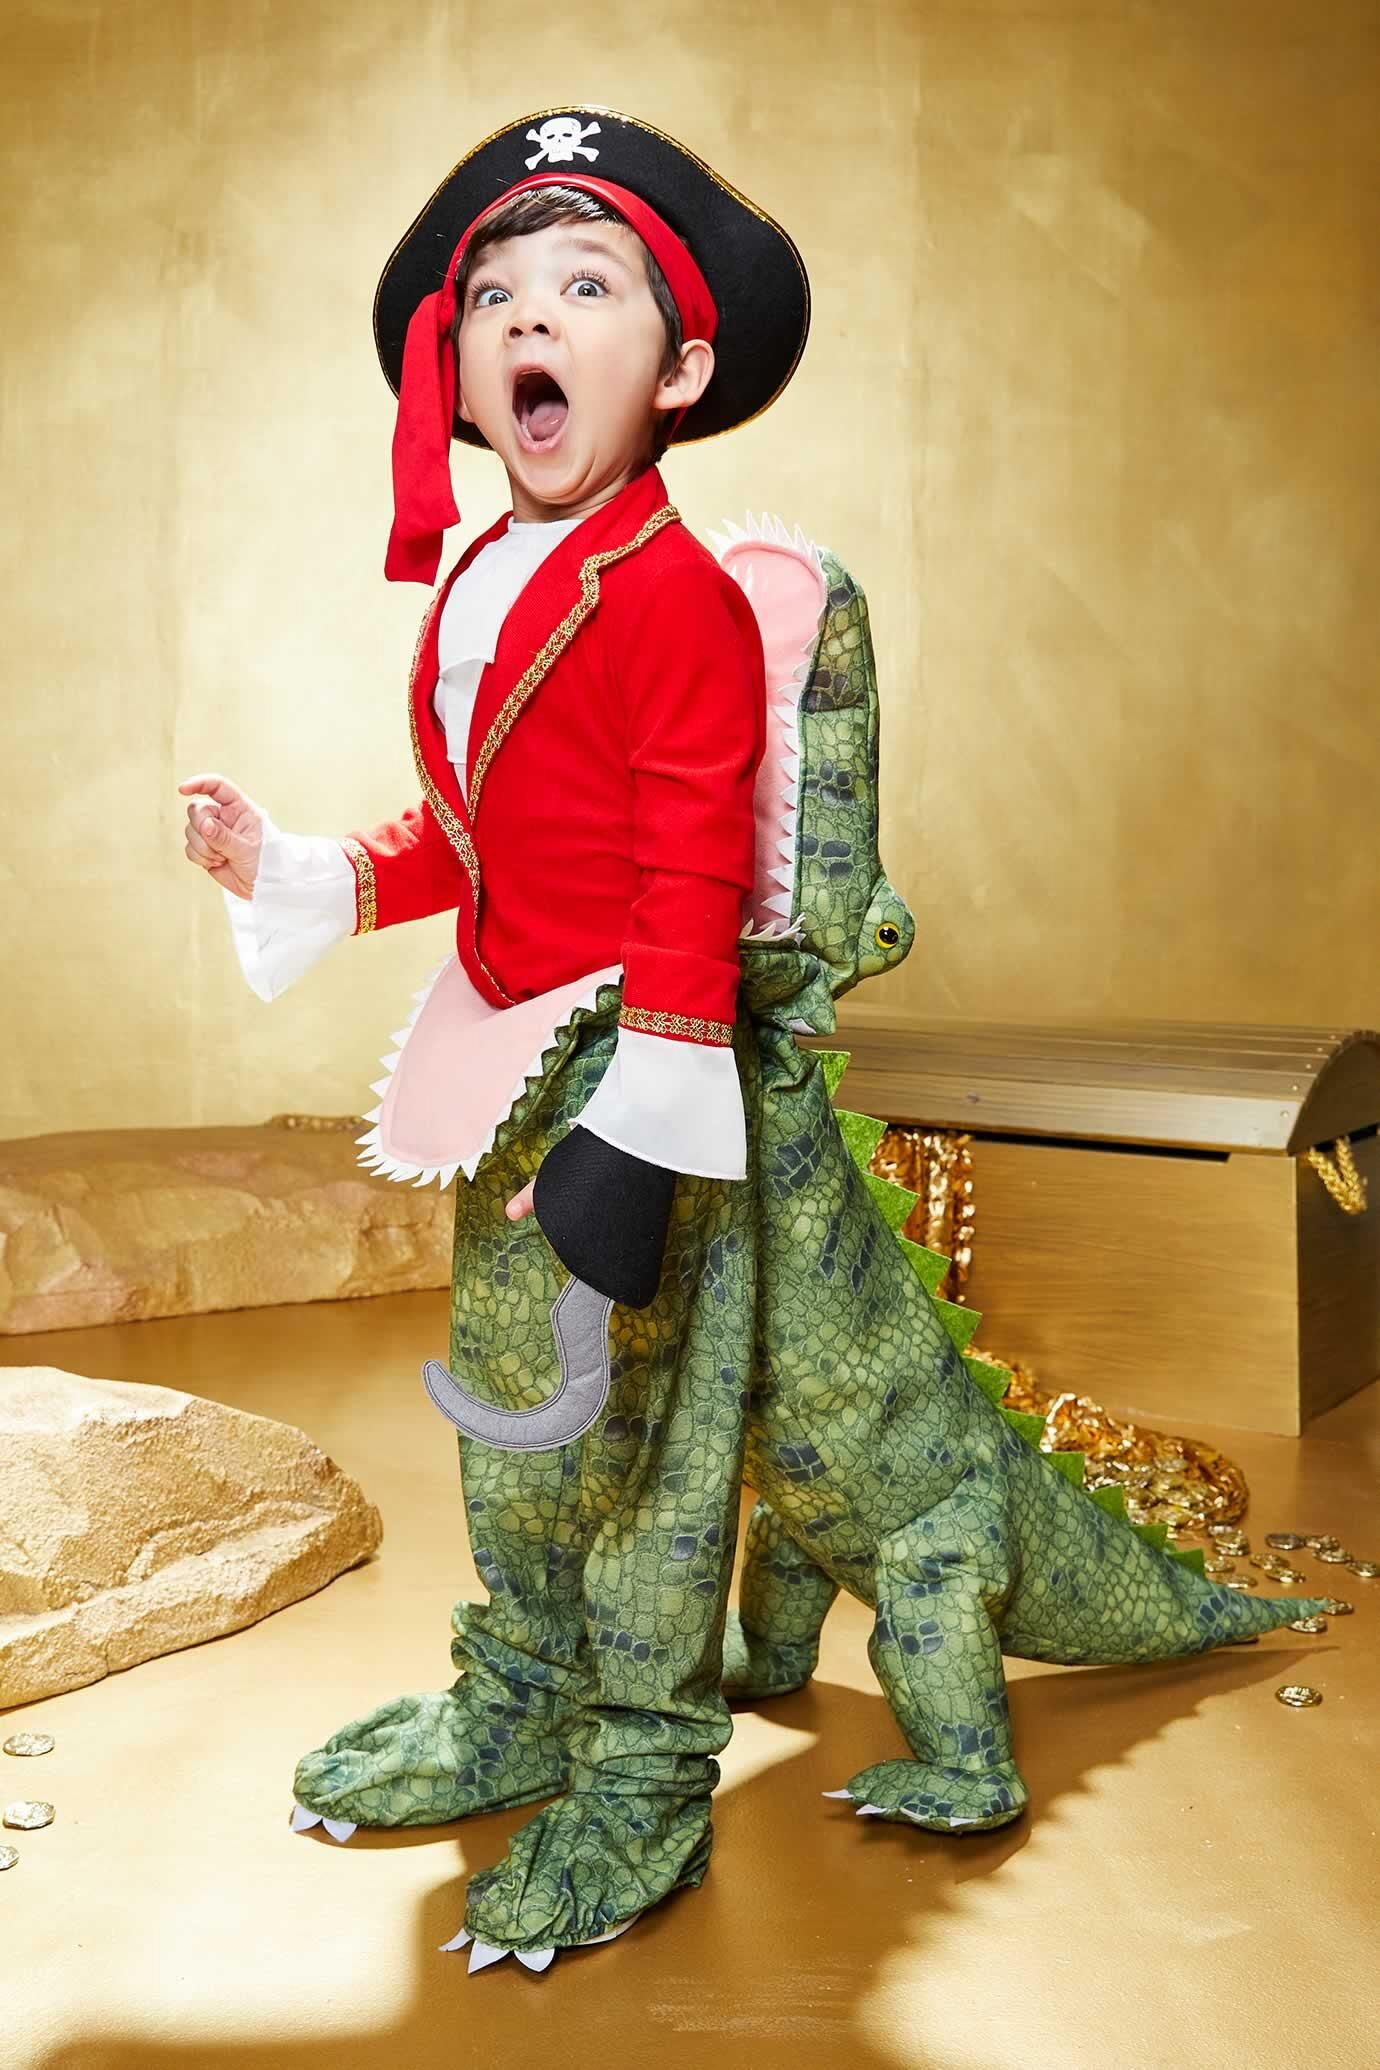 Crocodile Eating Pirate Costume for Kids | Chasing Fireflies #diypiratecostumeforkids